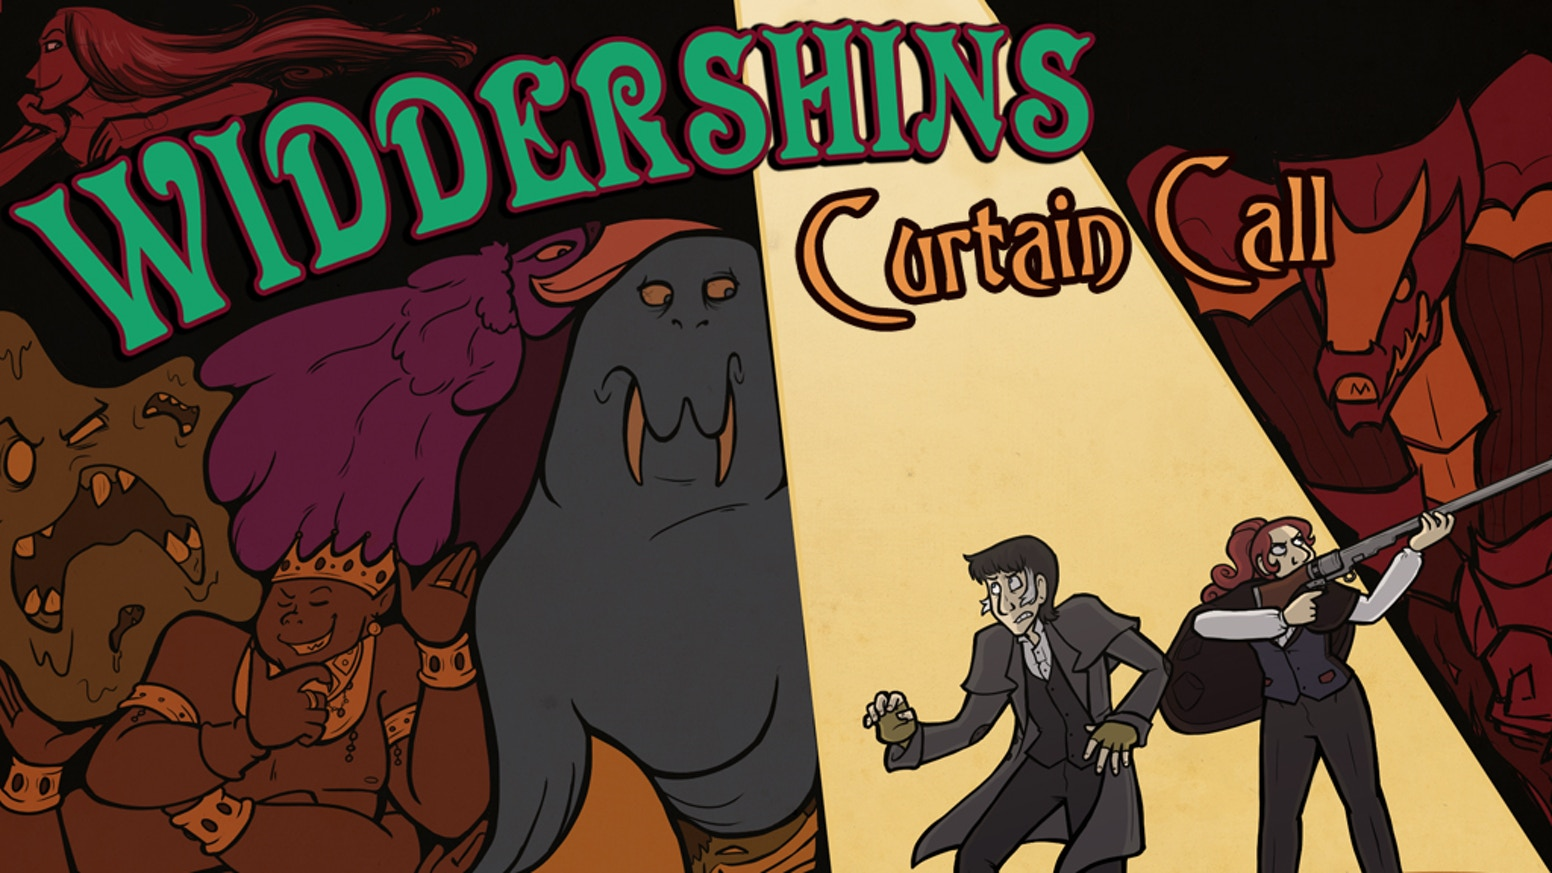 Victorian-era magic and adventure, in the latest printed volume of the webcomic Widdershins!